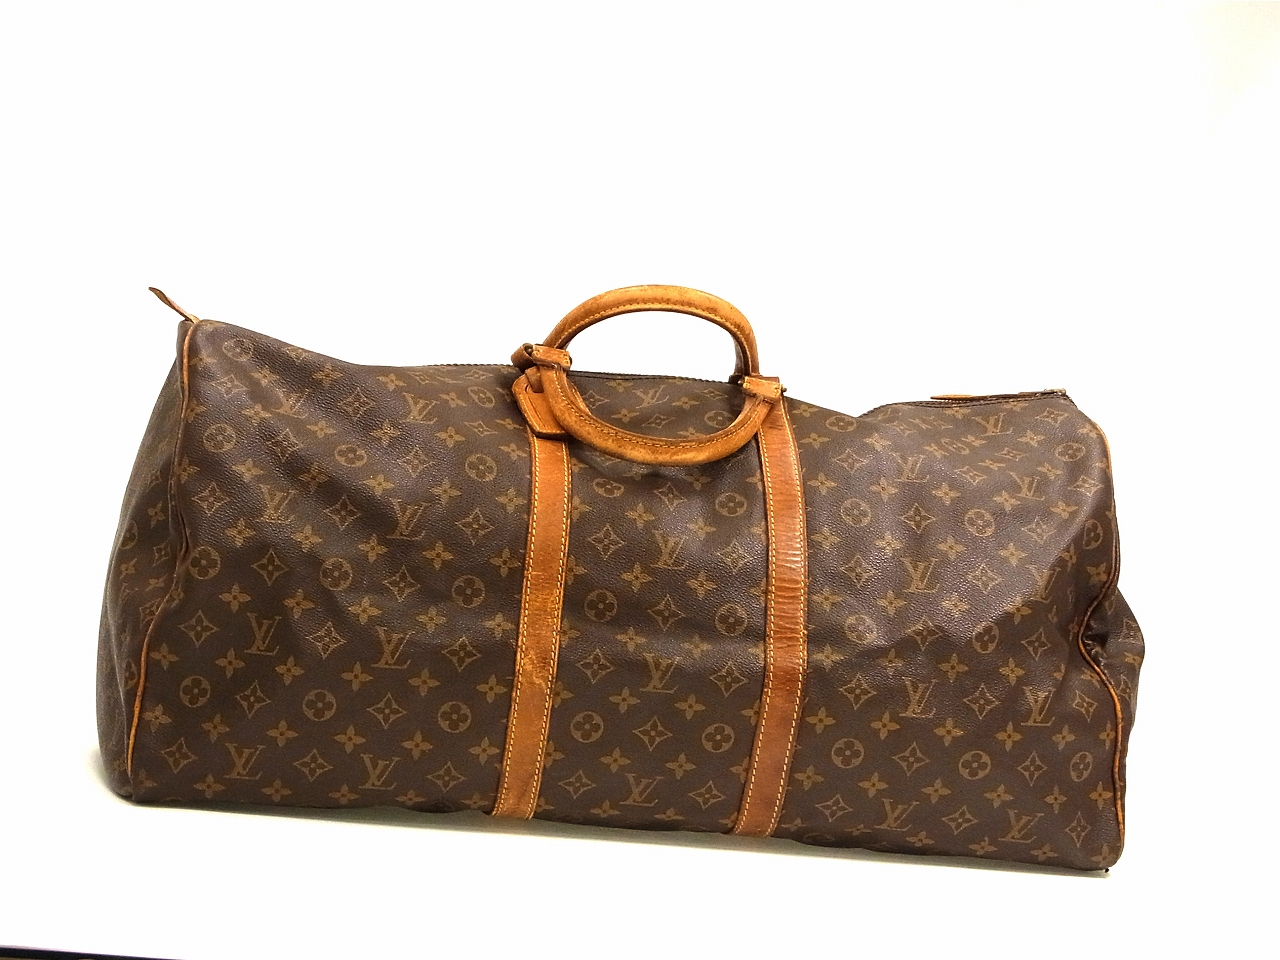 louis vuitton handbags for sale in south africa